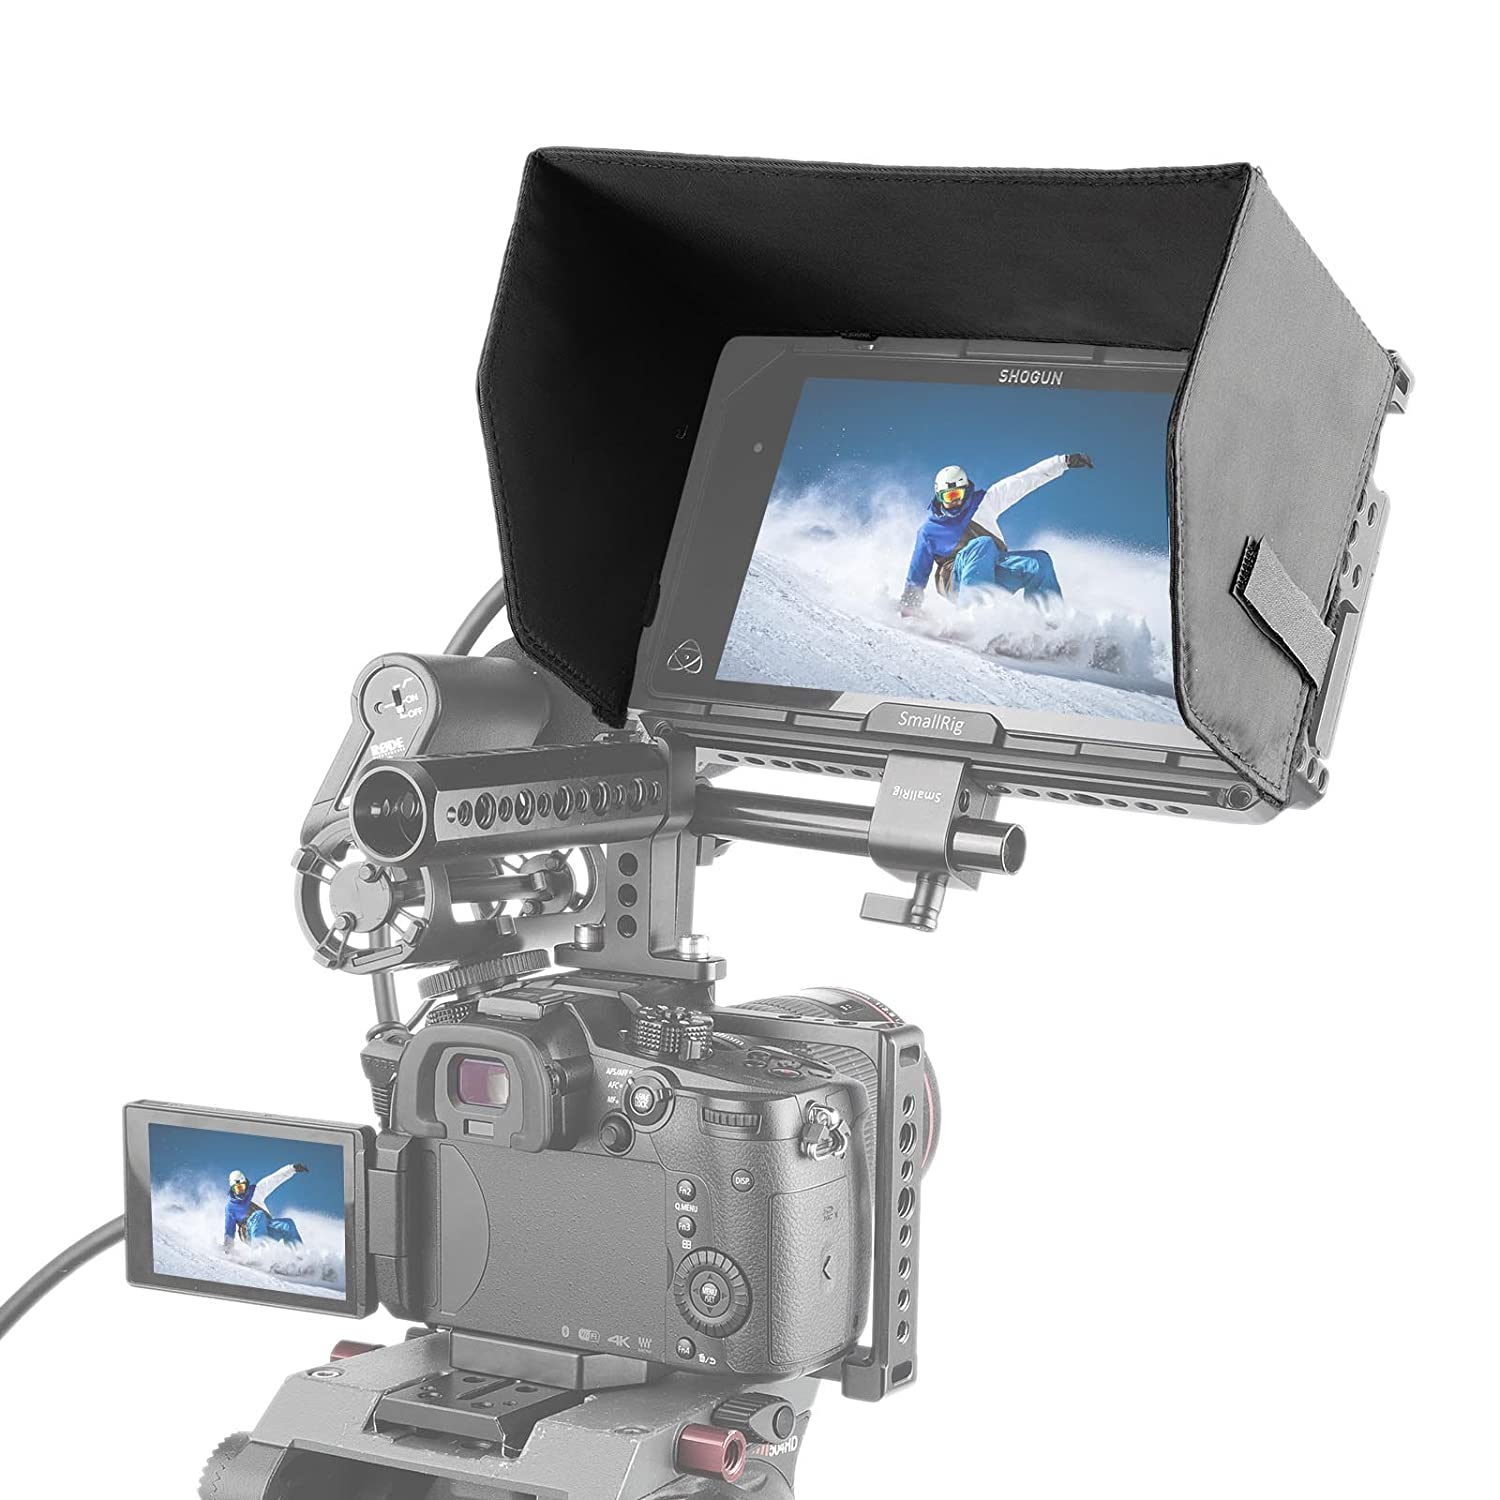 EVF Mount SmallRig NATO Lock Clamp with Single 15mm Rod Clamp for Monitor Mount 1254 LCD Light